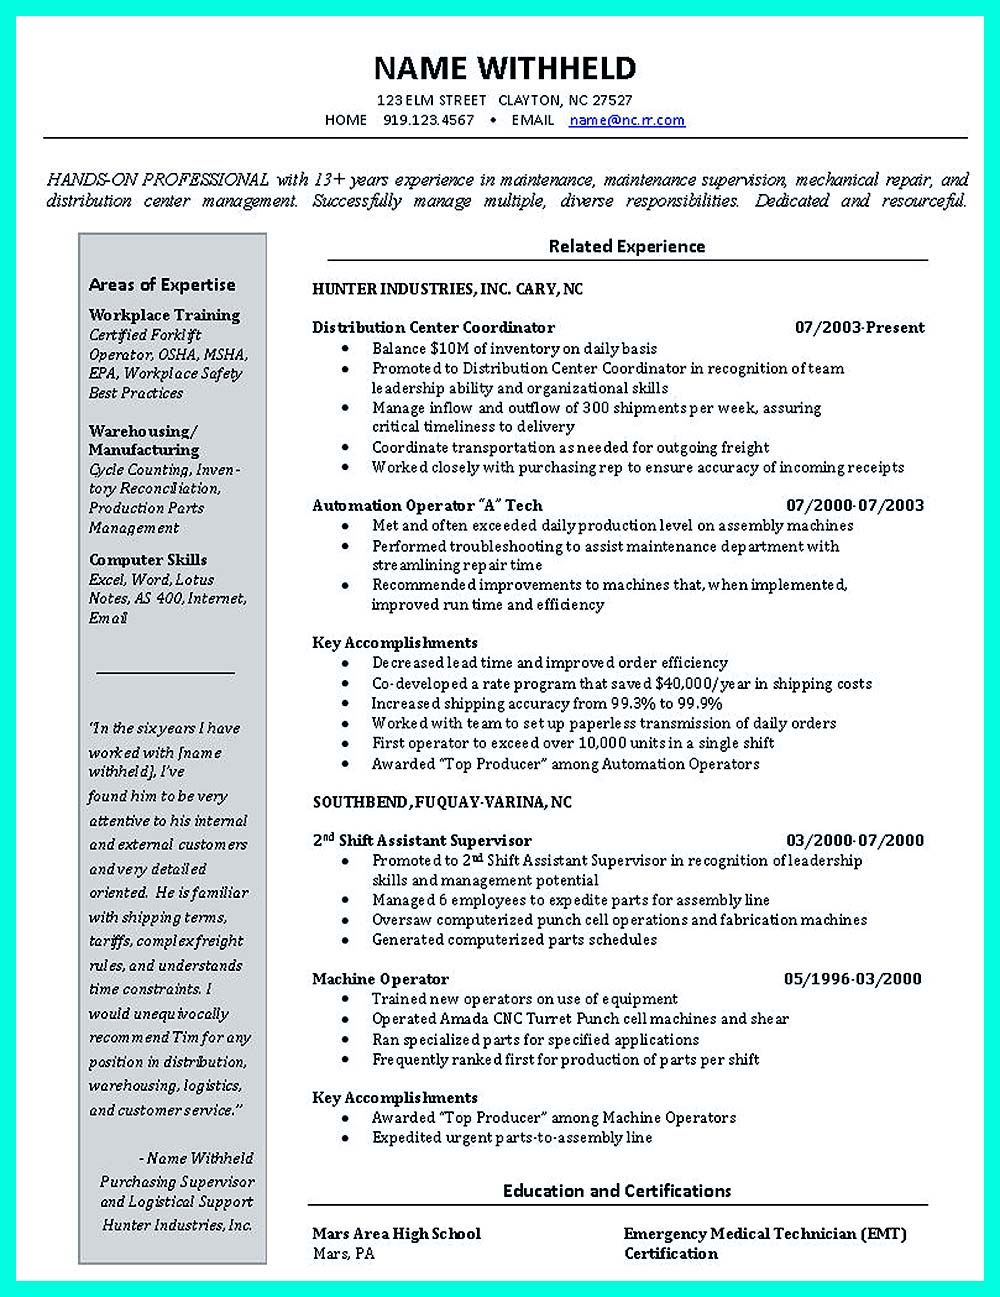 Example Resume For An Inventory Control Manager. Sample Resume For A  Inventory Control Manager, Free Resume Writing Example To Use As A Template.